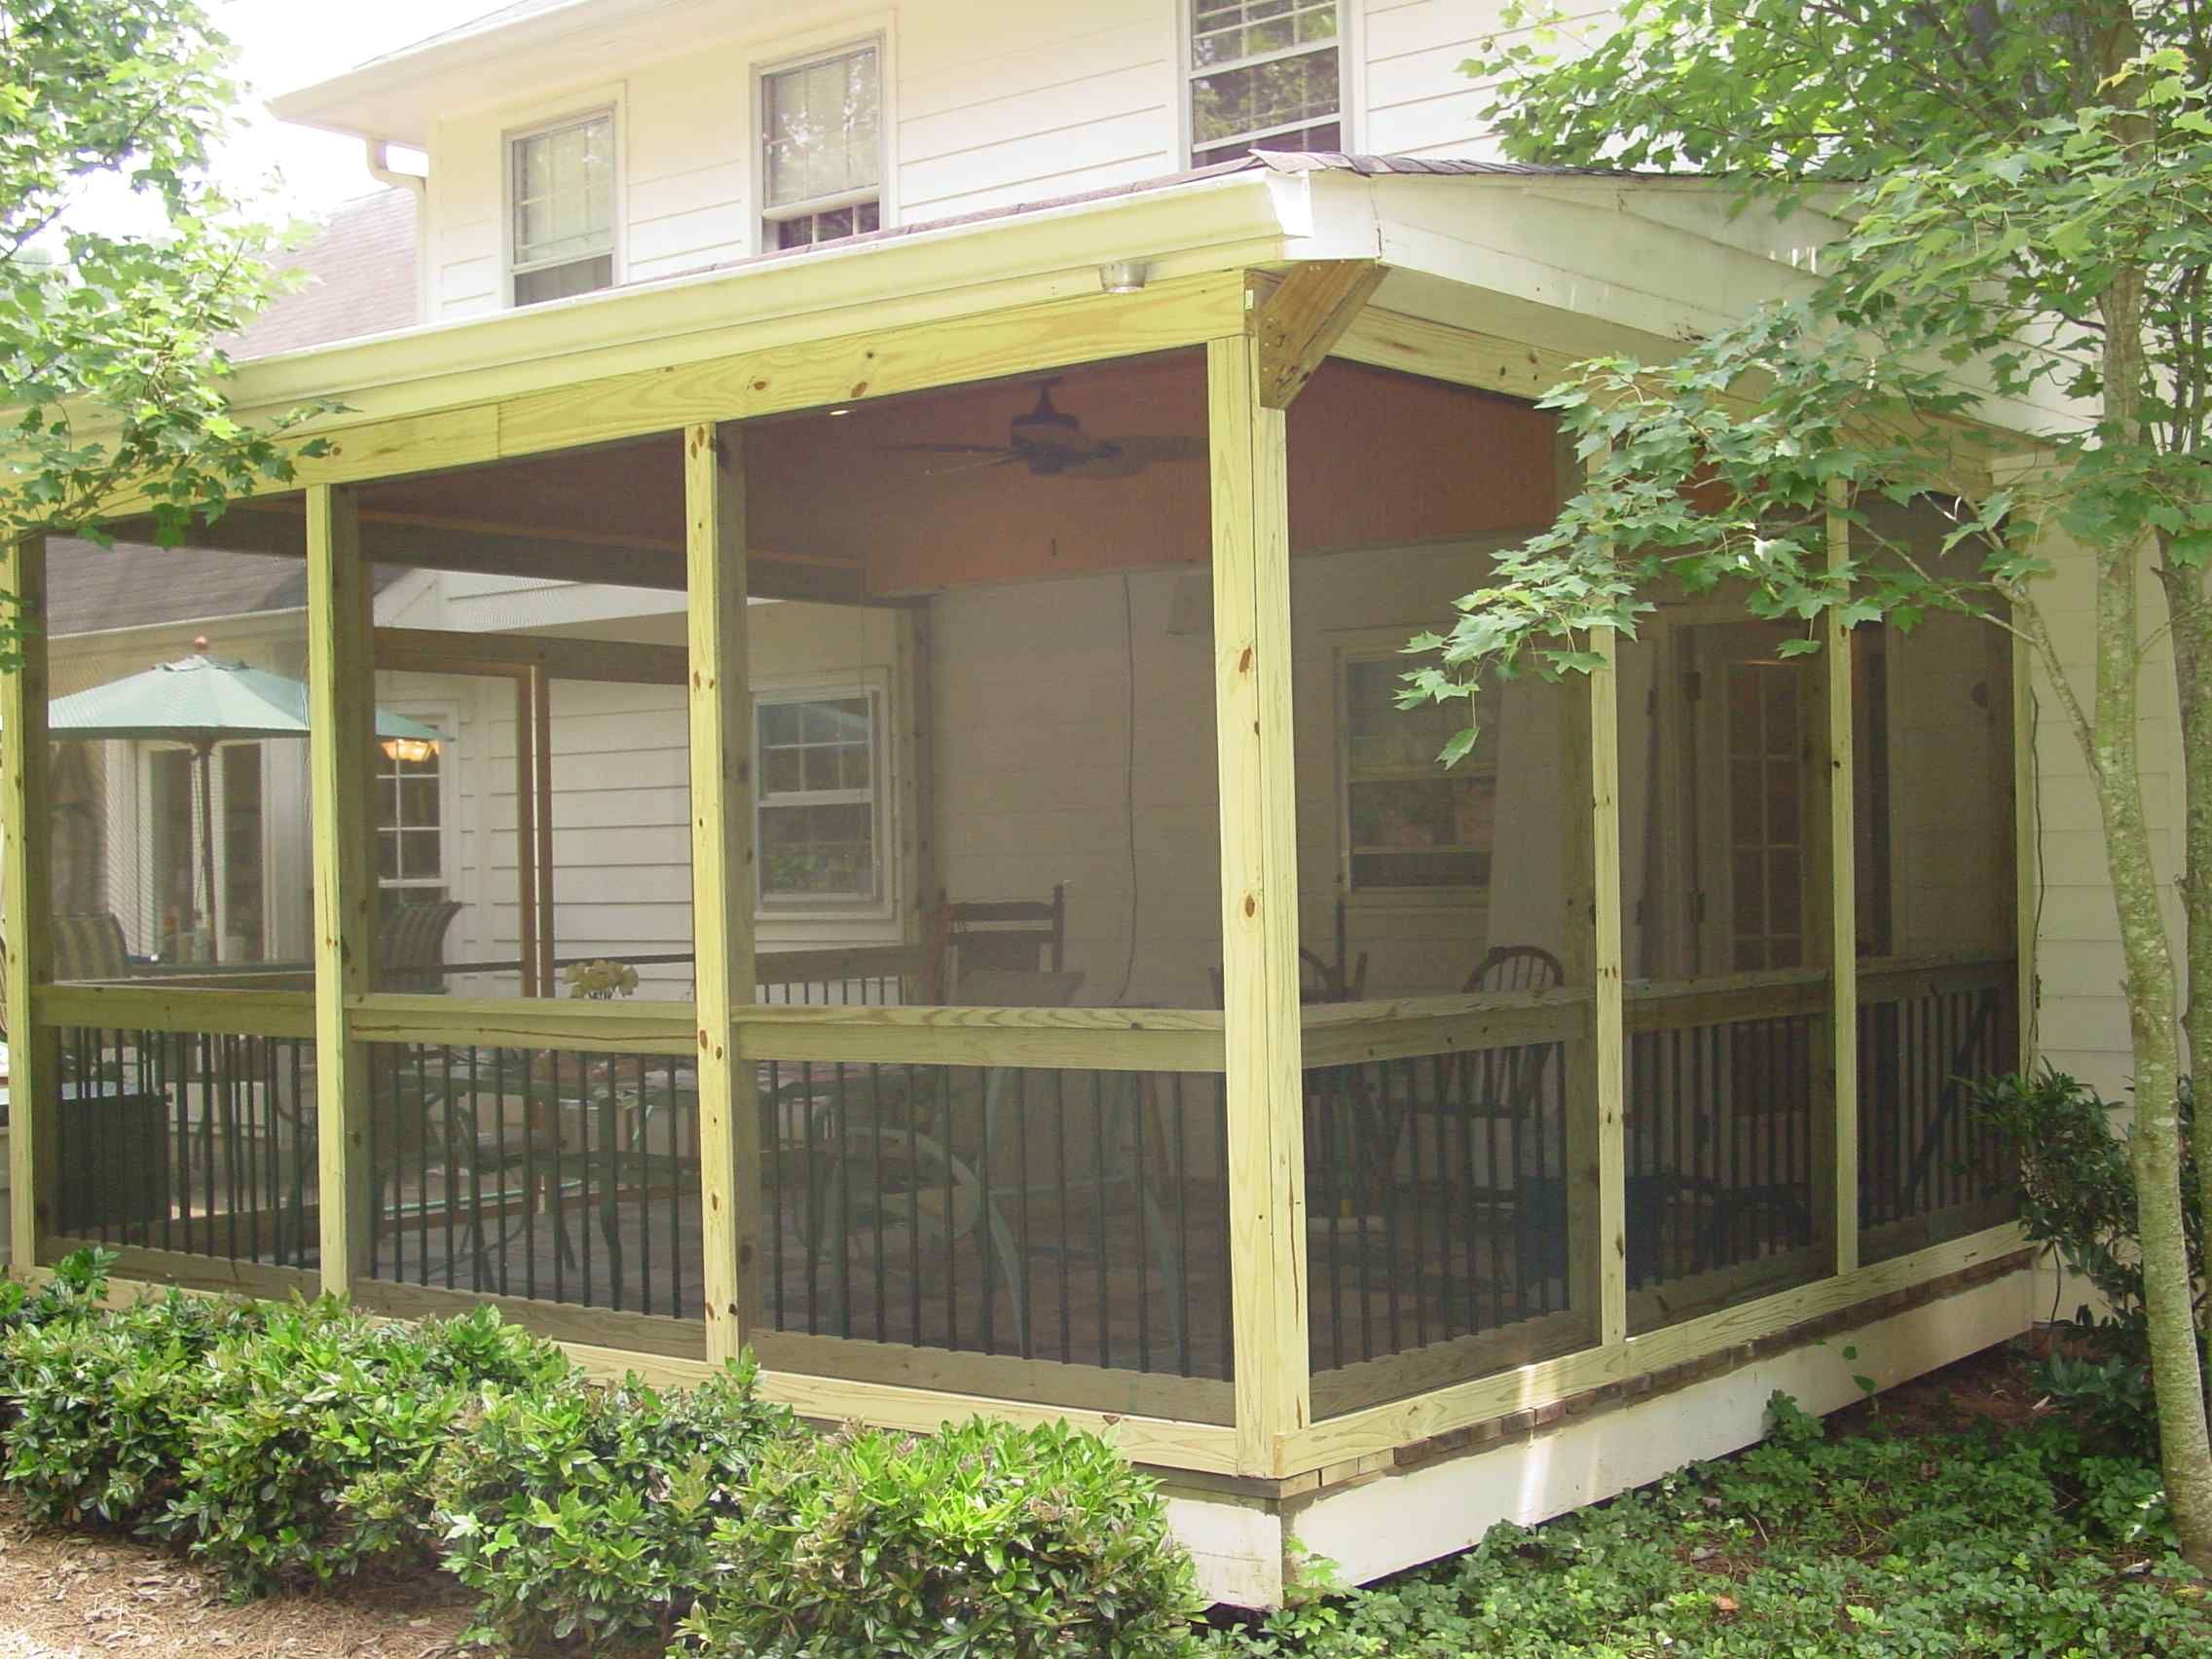 porch from screen utrails screens decorative in consider home ideas to for design decorating screened things